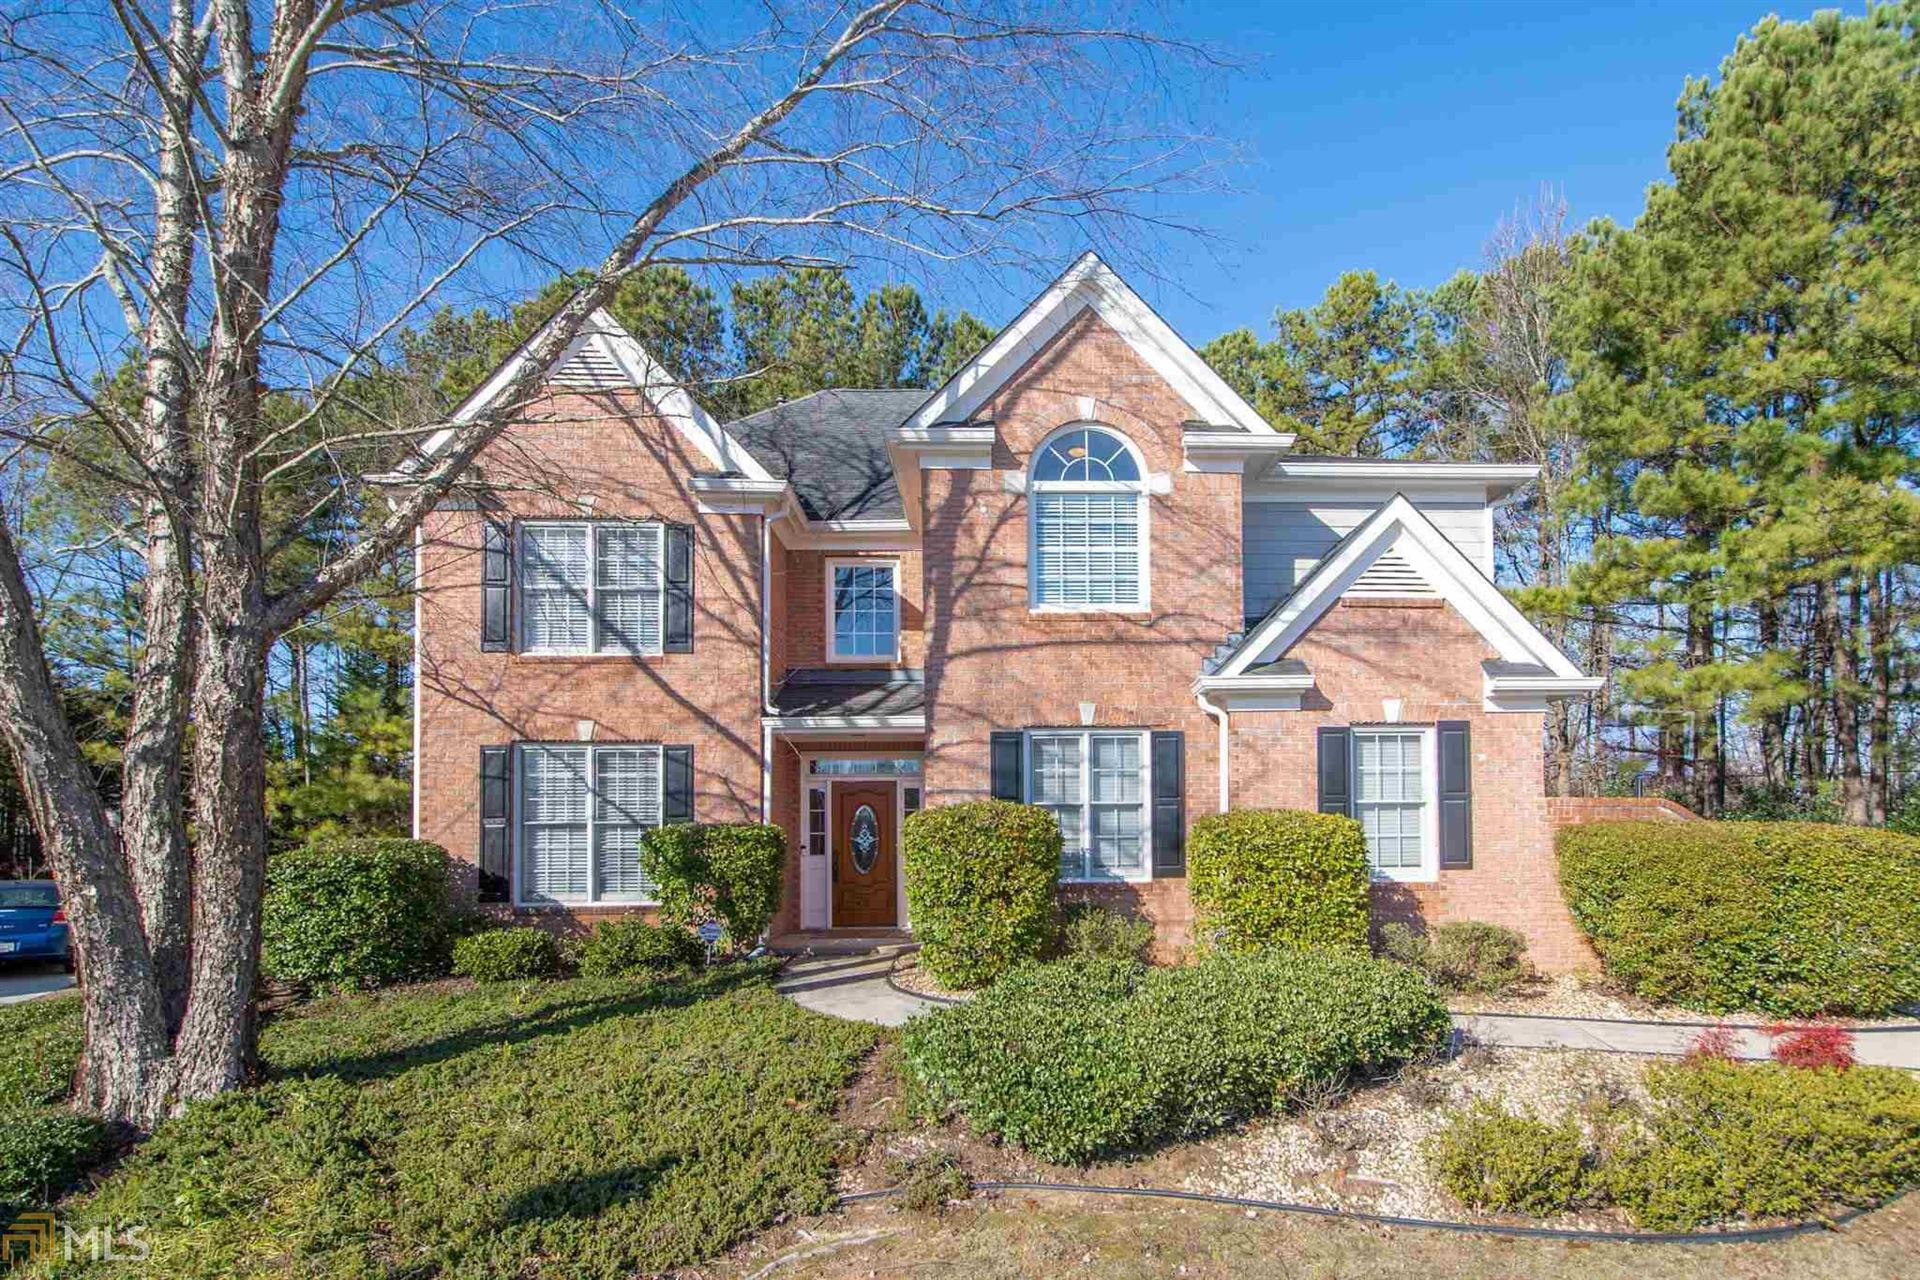 3479 Coopers Mill Ct, Dacula, GA 30019 - #: 8771349